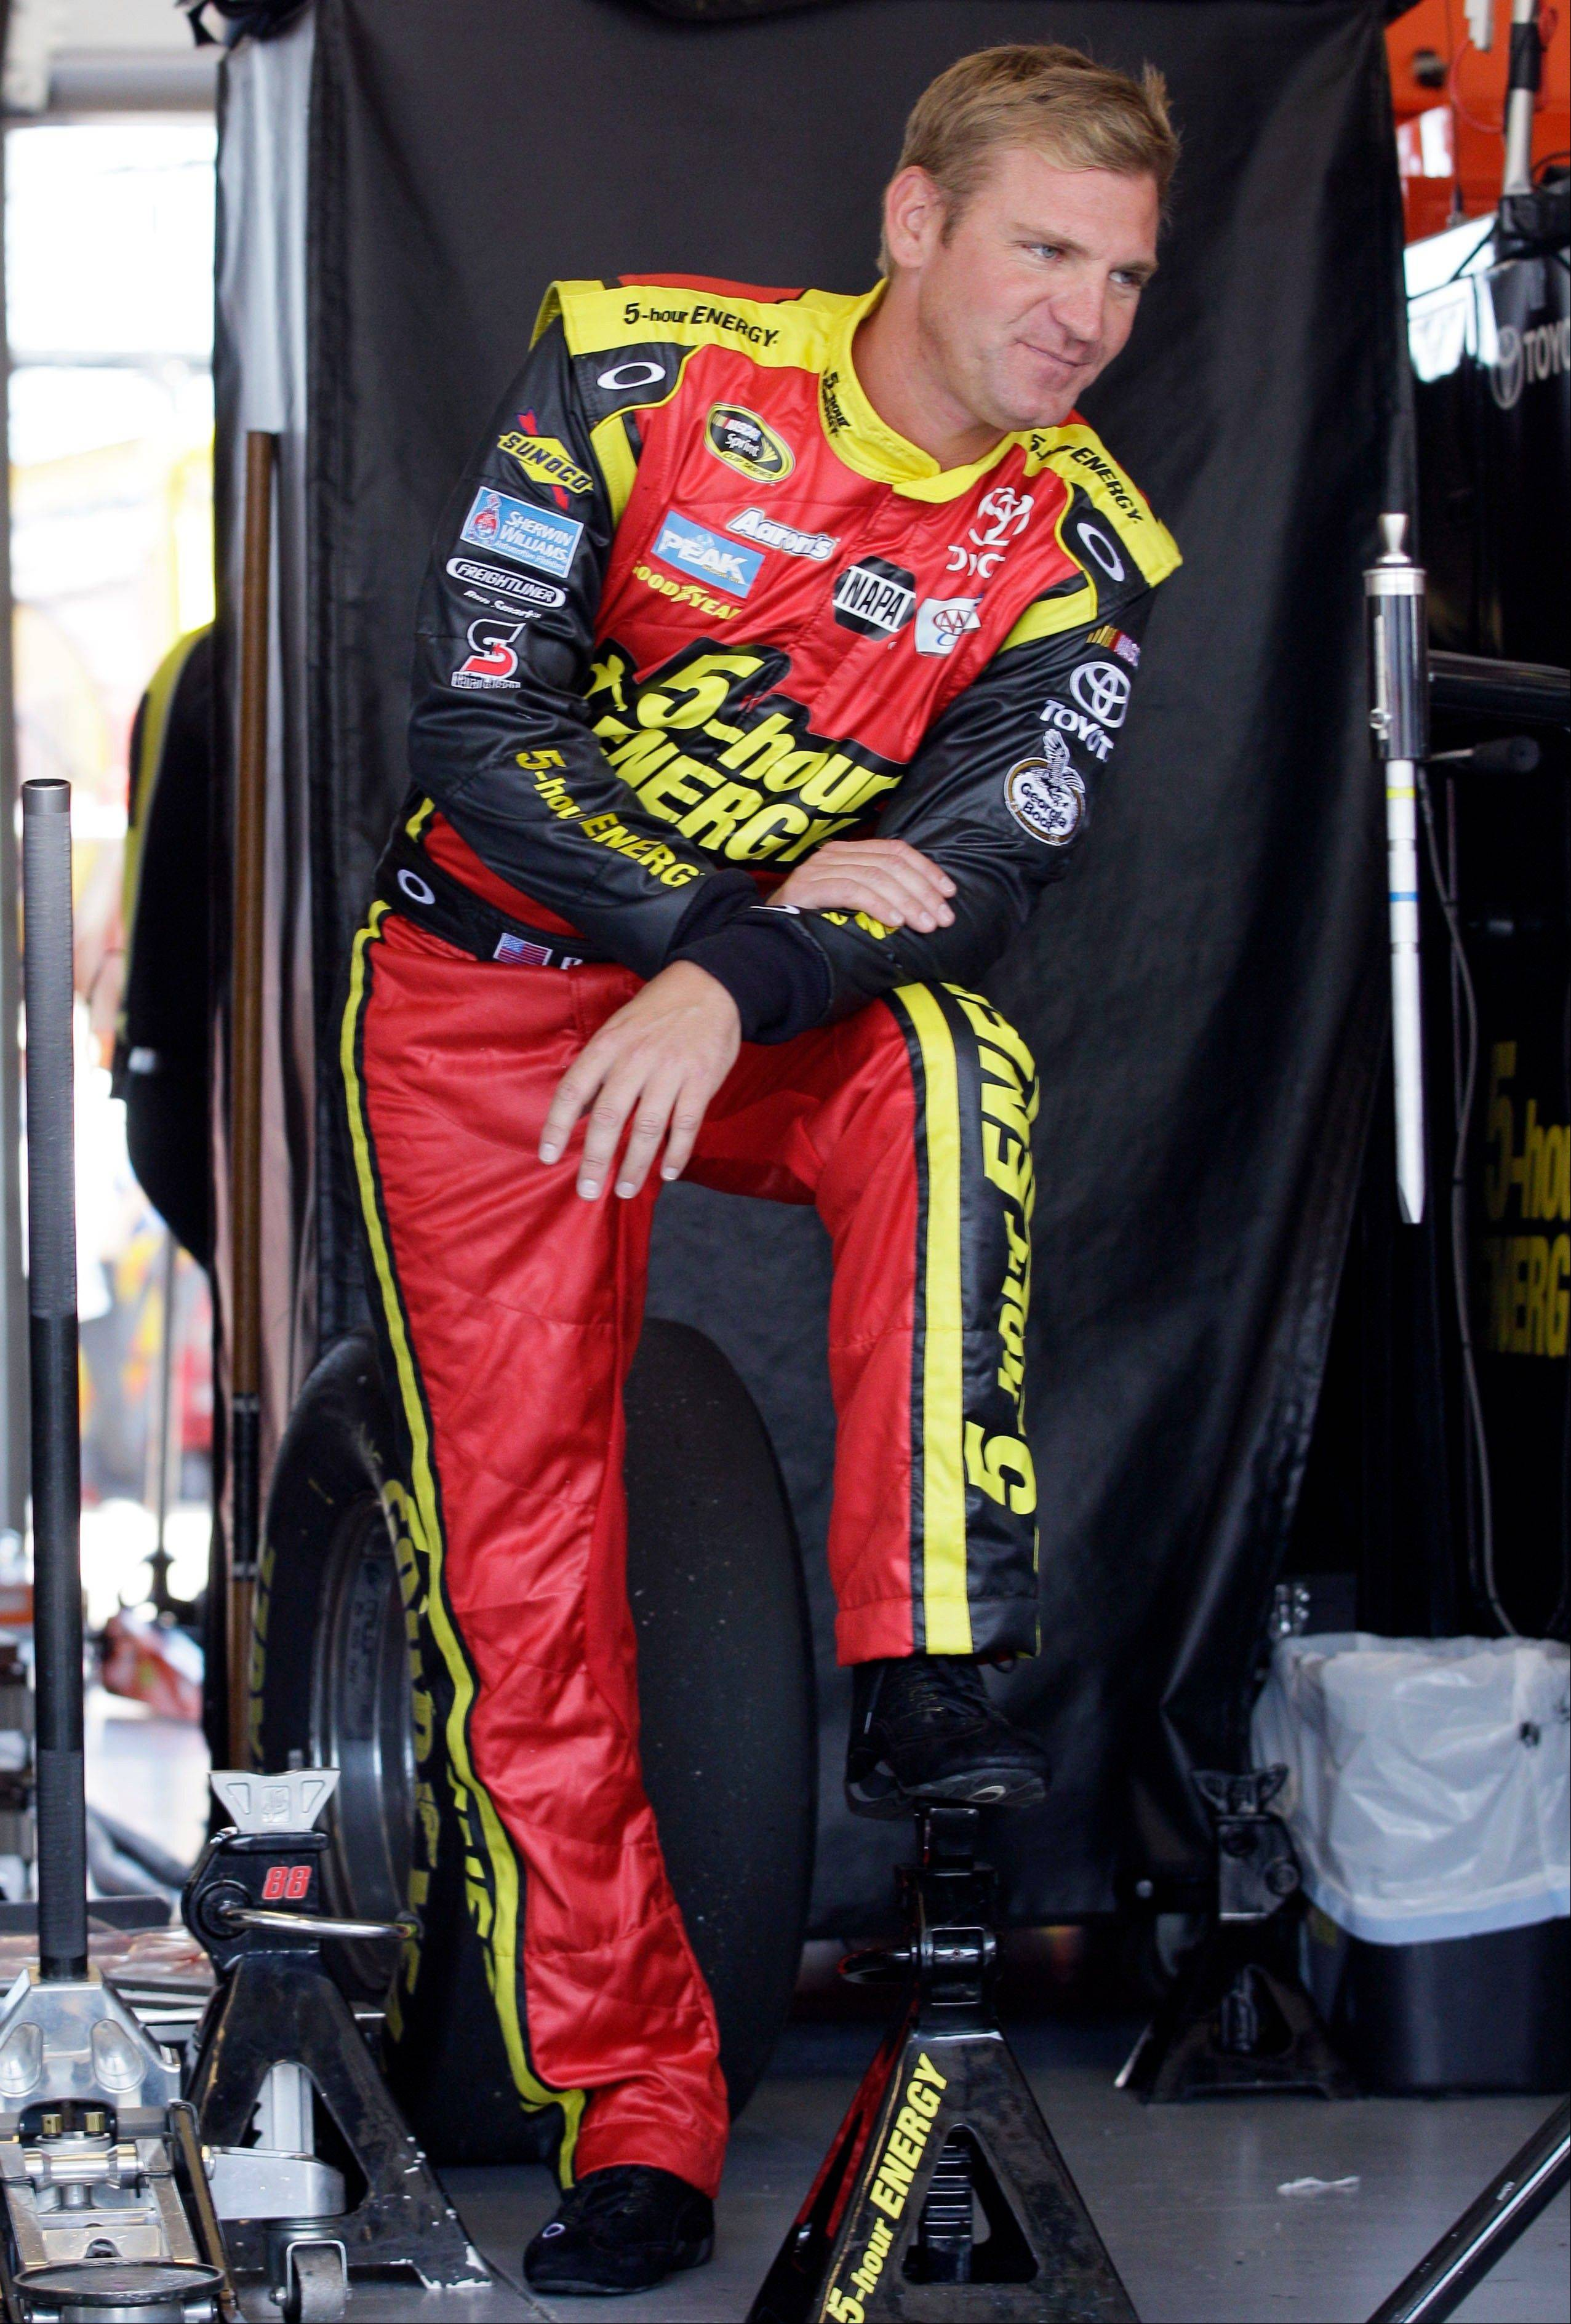 Waltrip riding high with pair of drivers in Chase